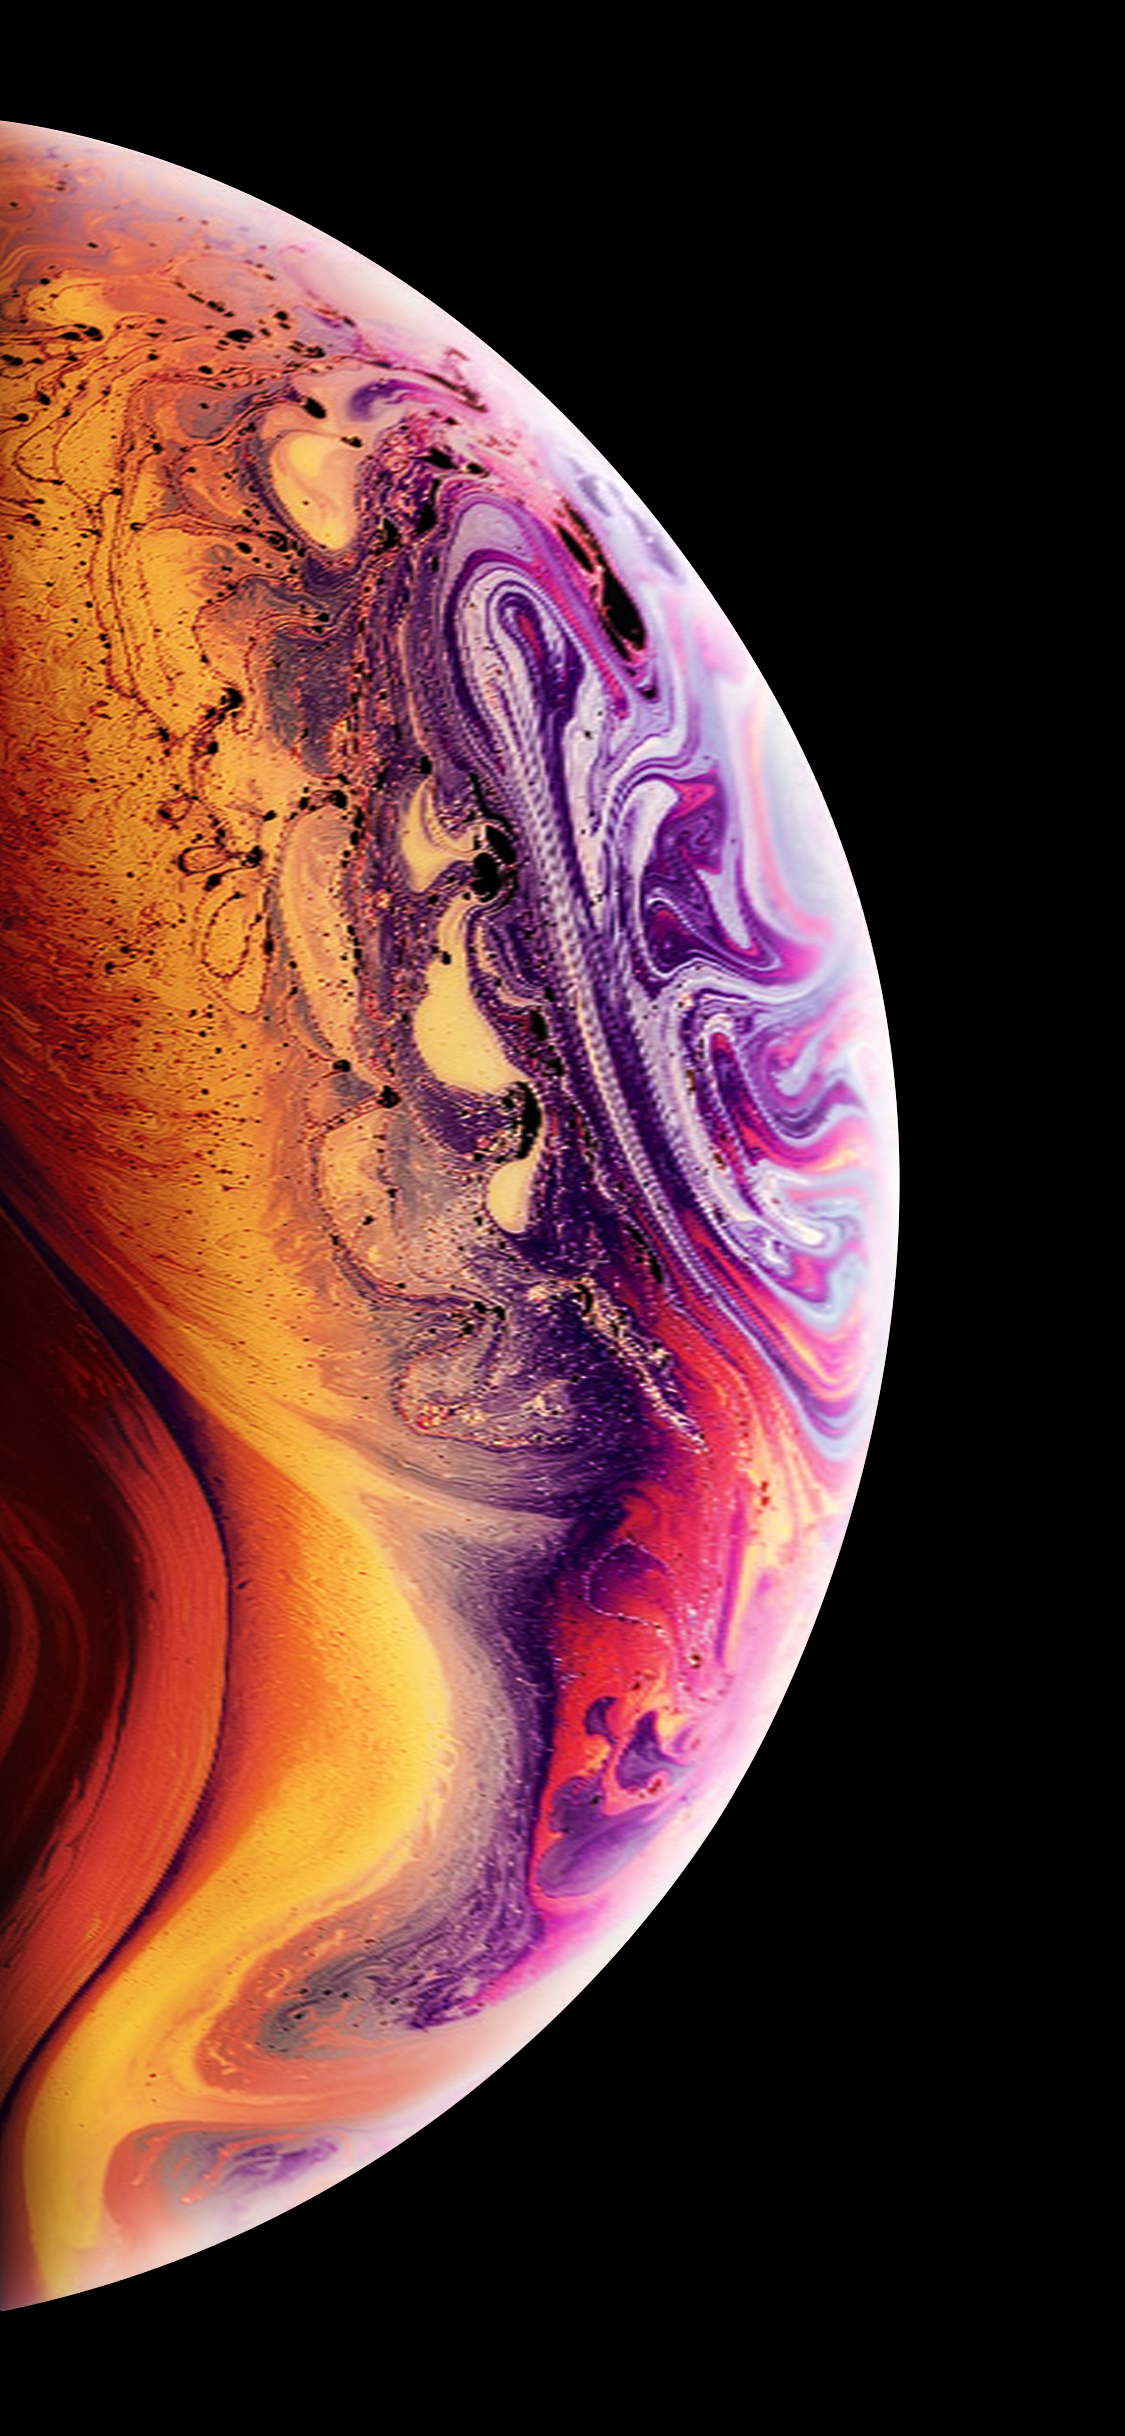 iPhone wallpaper iphone xs Apple